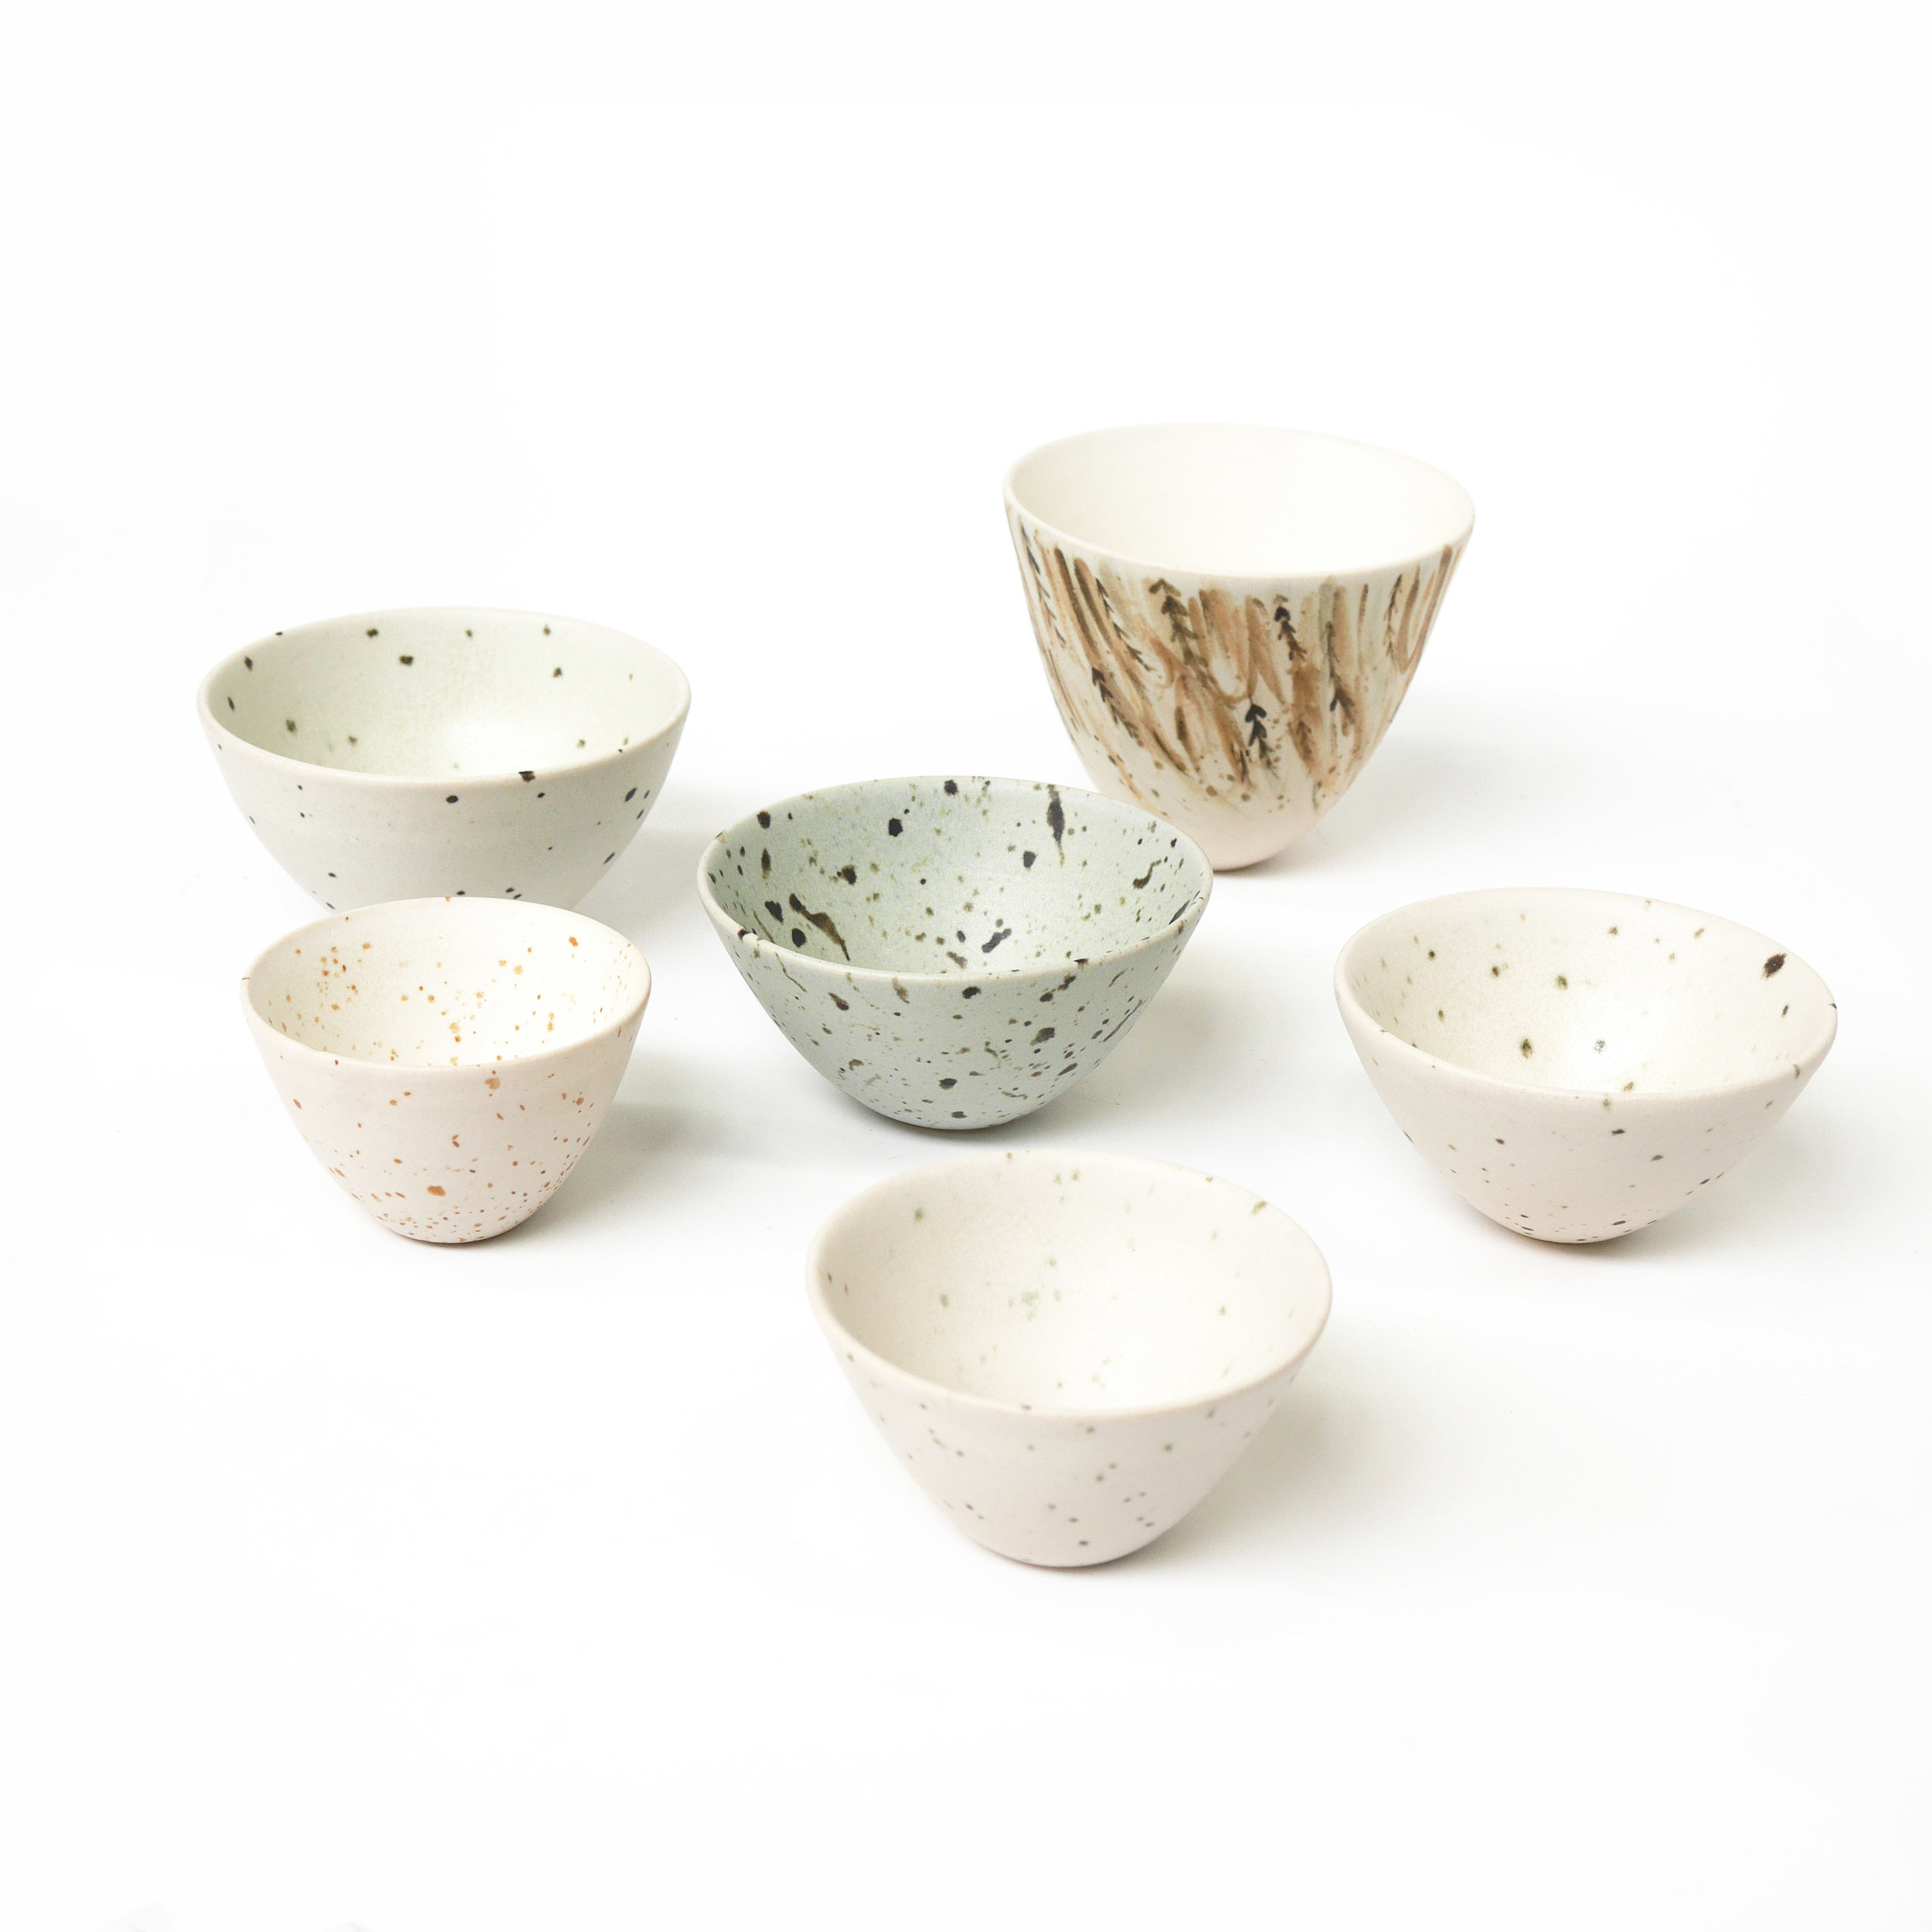 Matte glazed thrown and handpainted stoneware feather and eggshell bowls